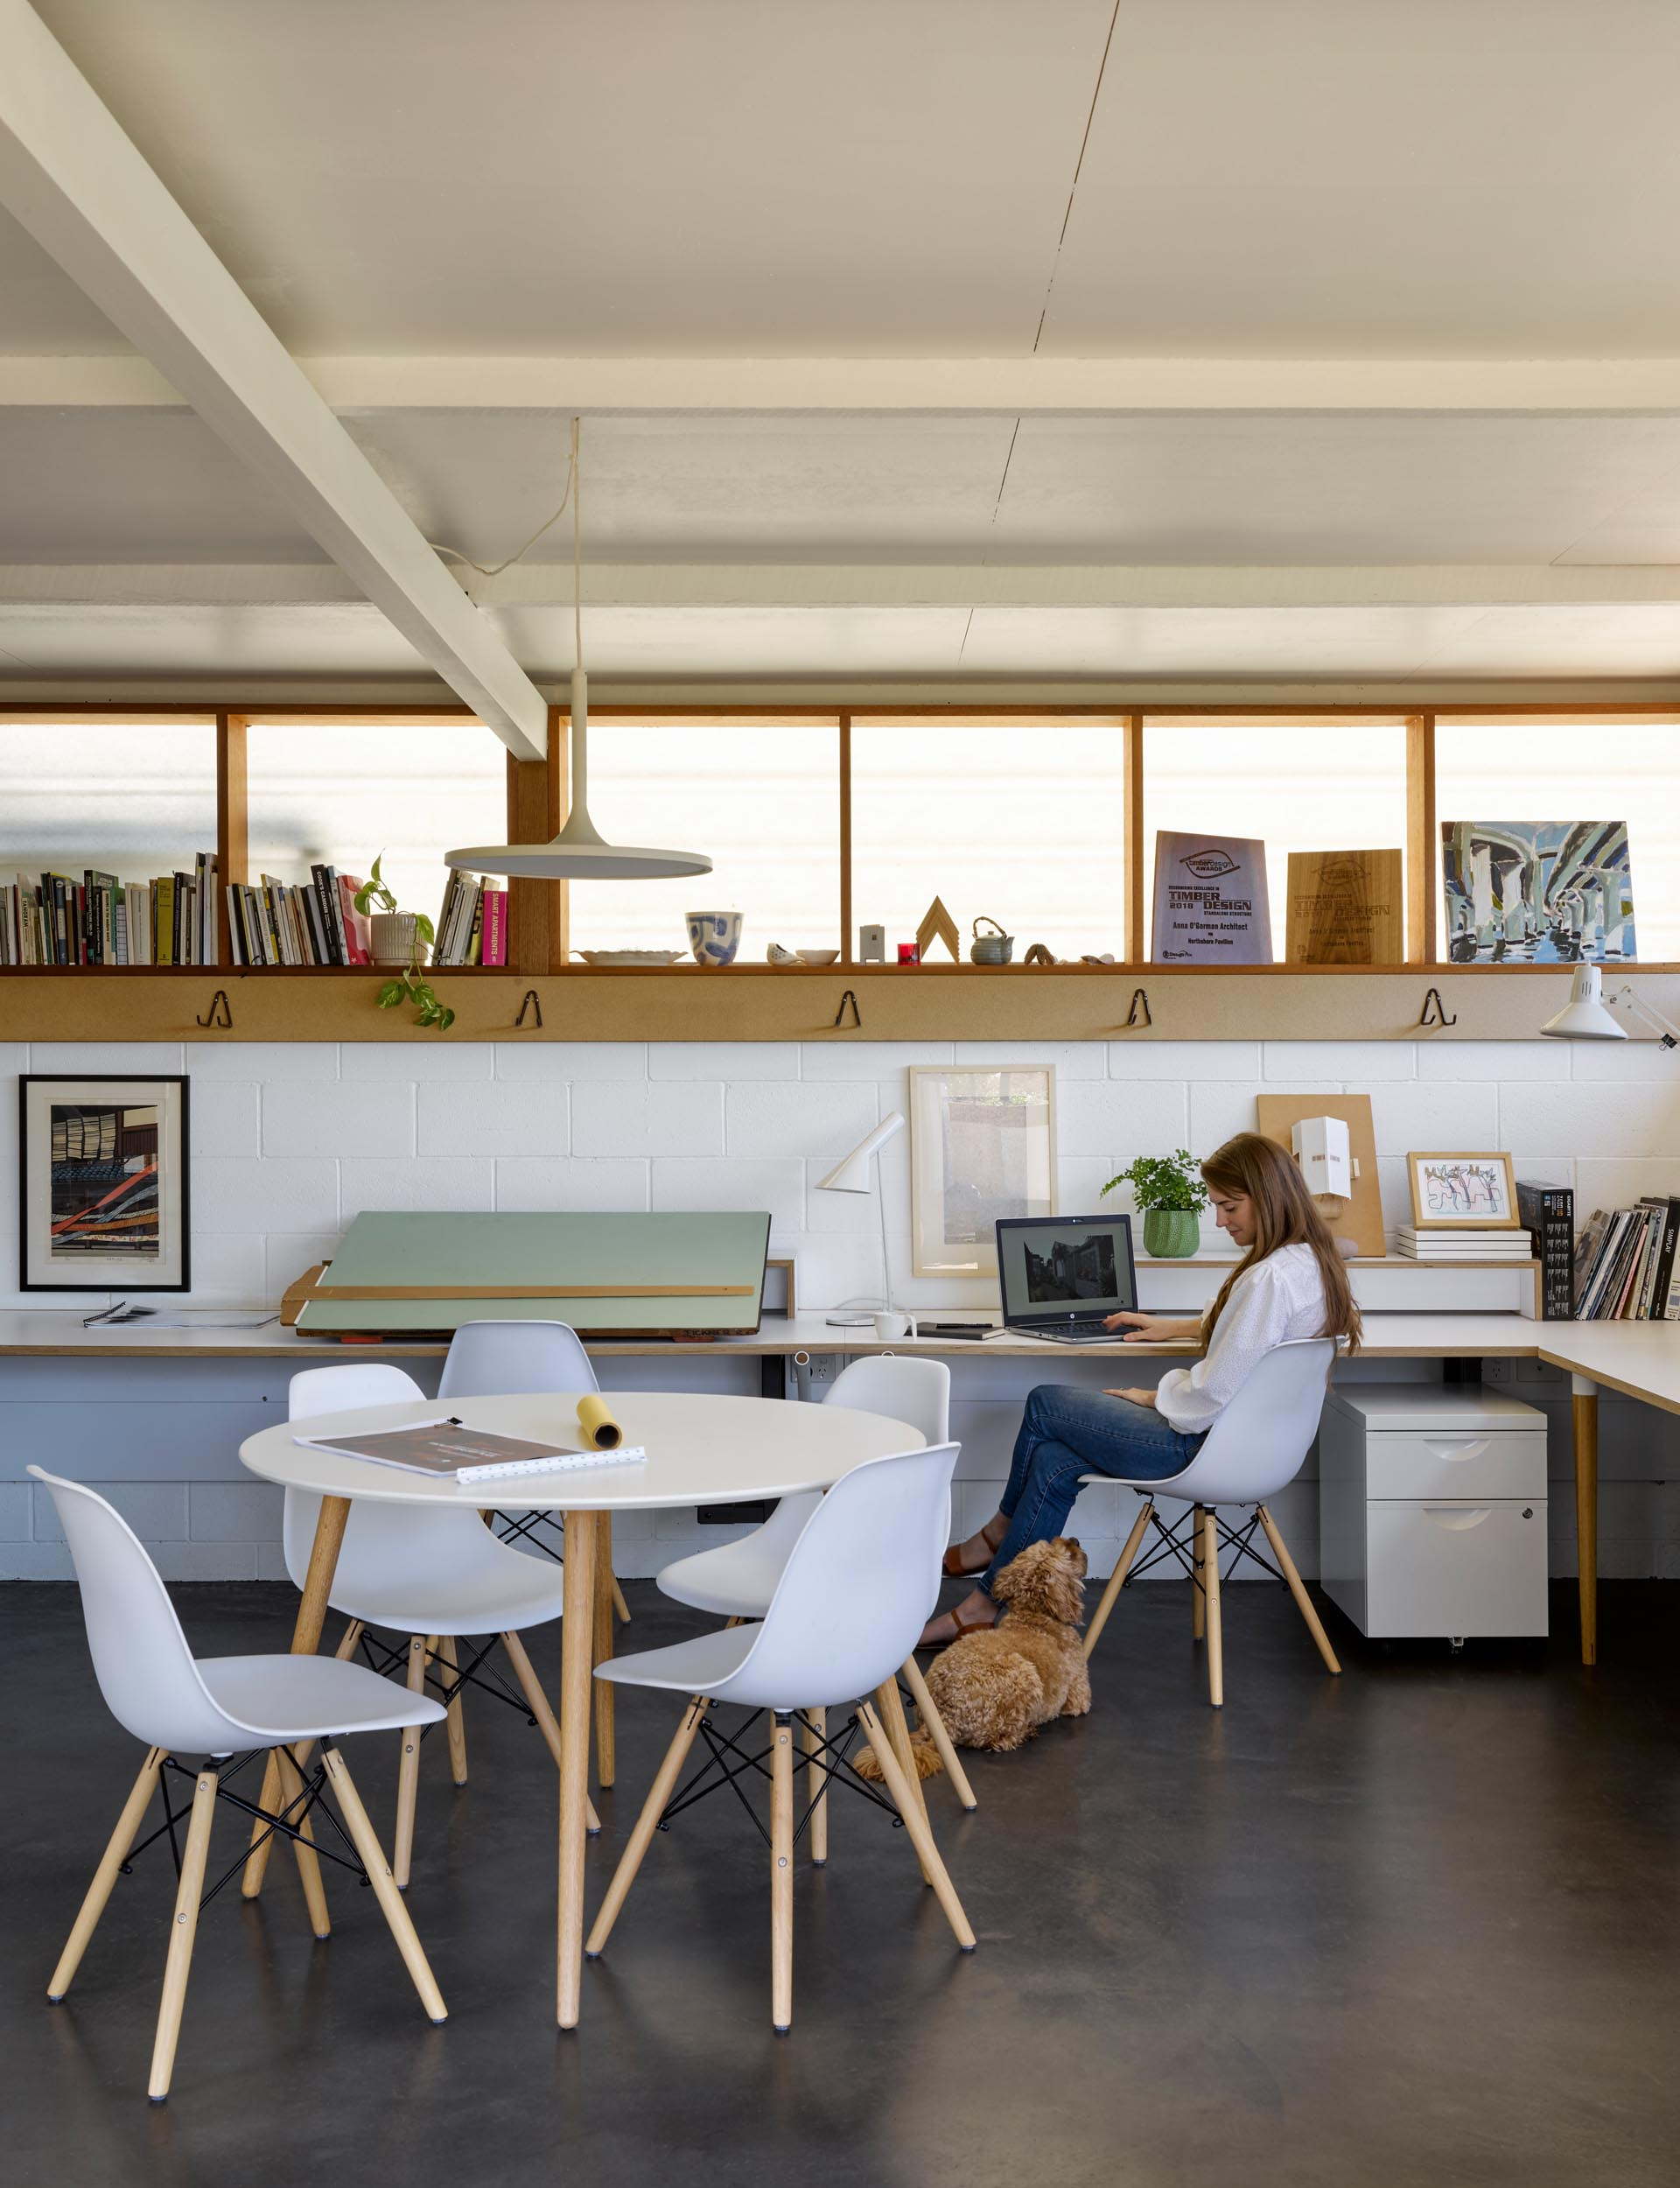 A converted carport is now an office for 4-5 people, and can be used as a secondary suite in the future.